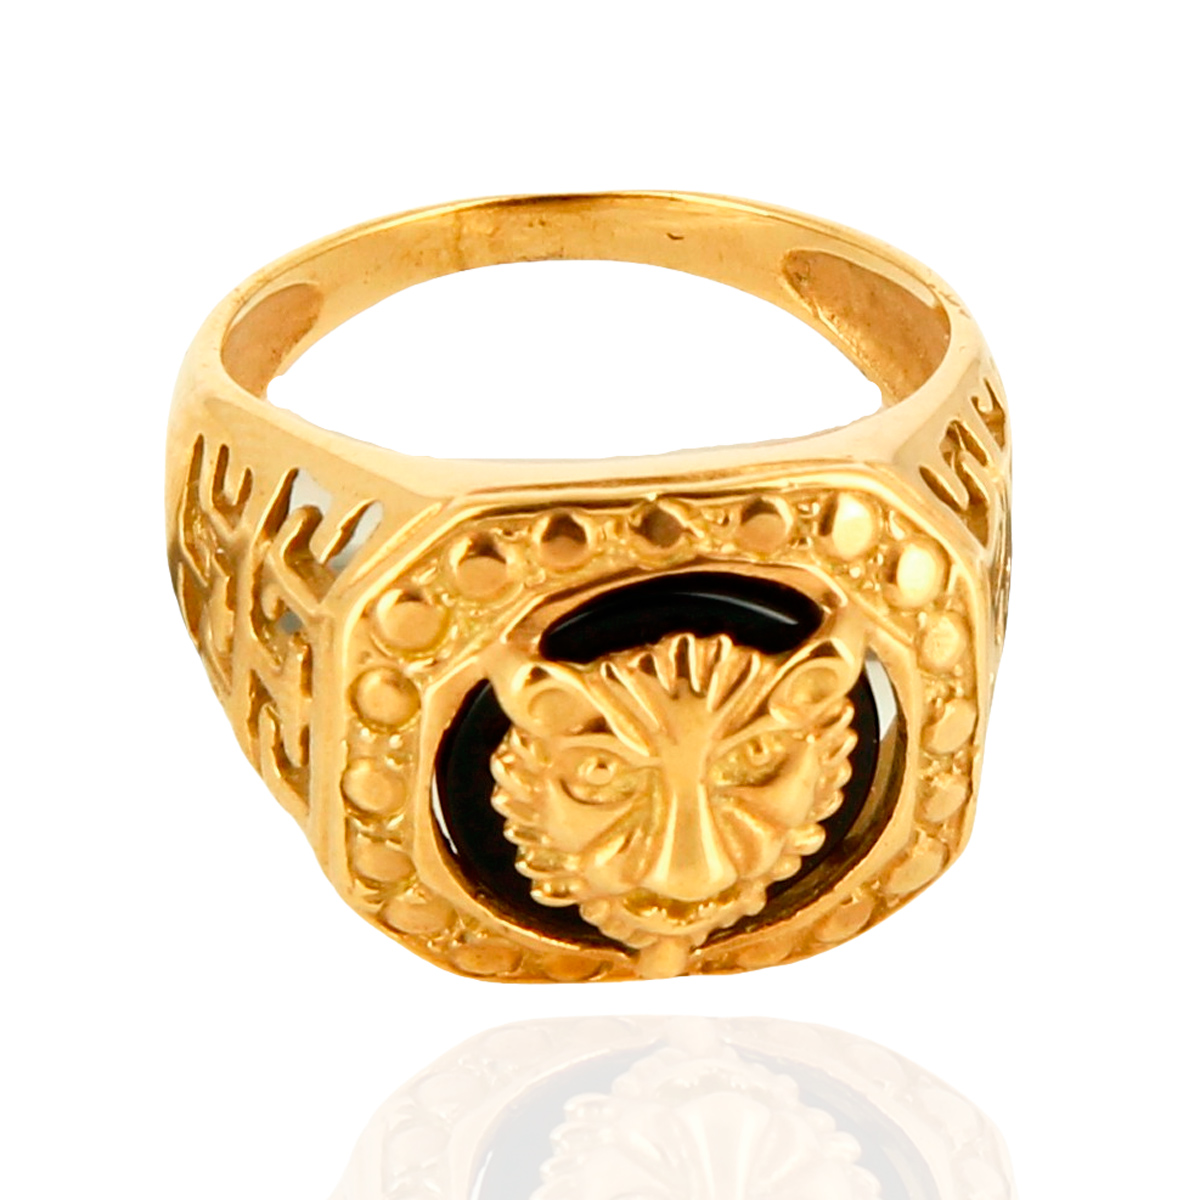 Bague tigre or 9k - TERRA